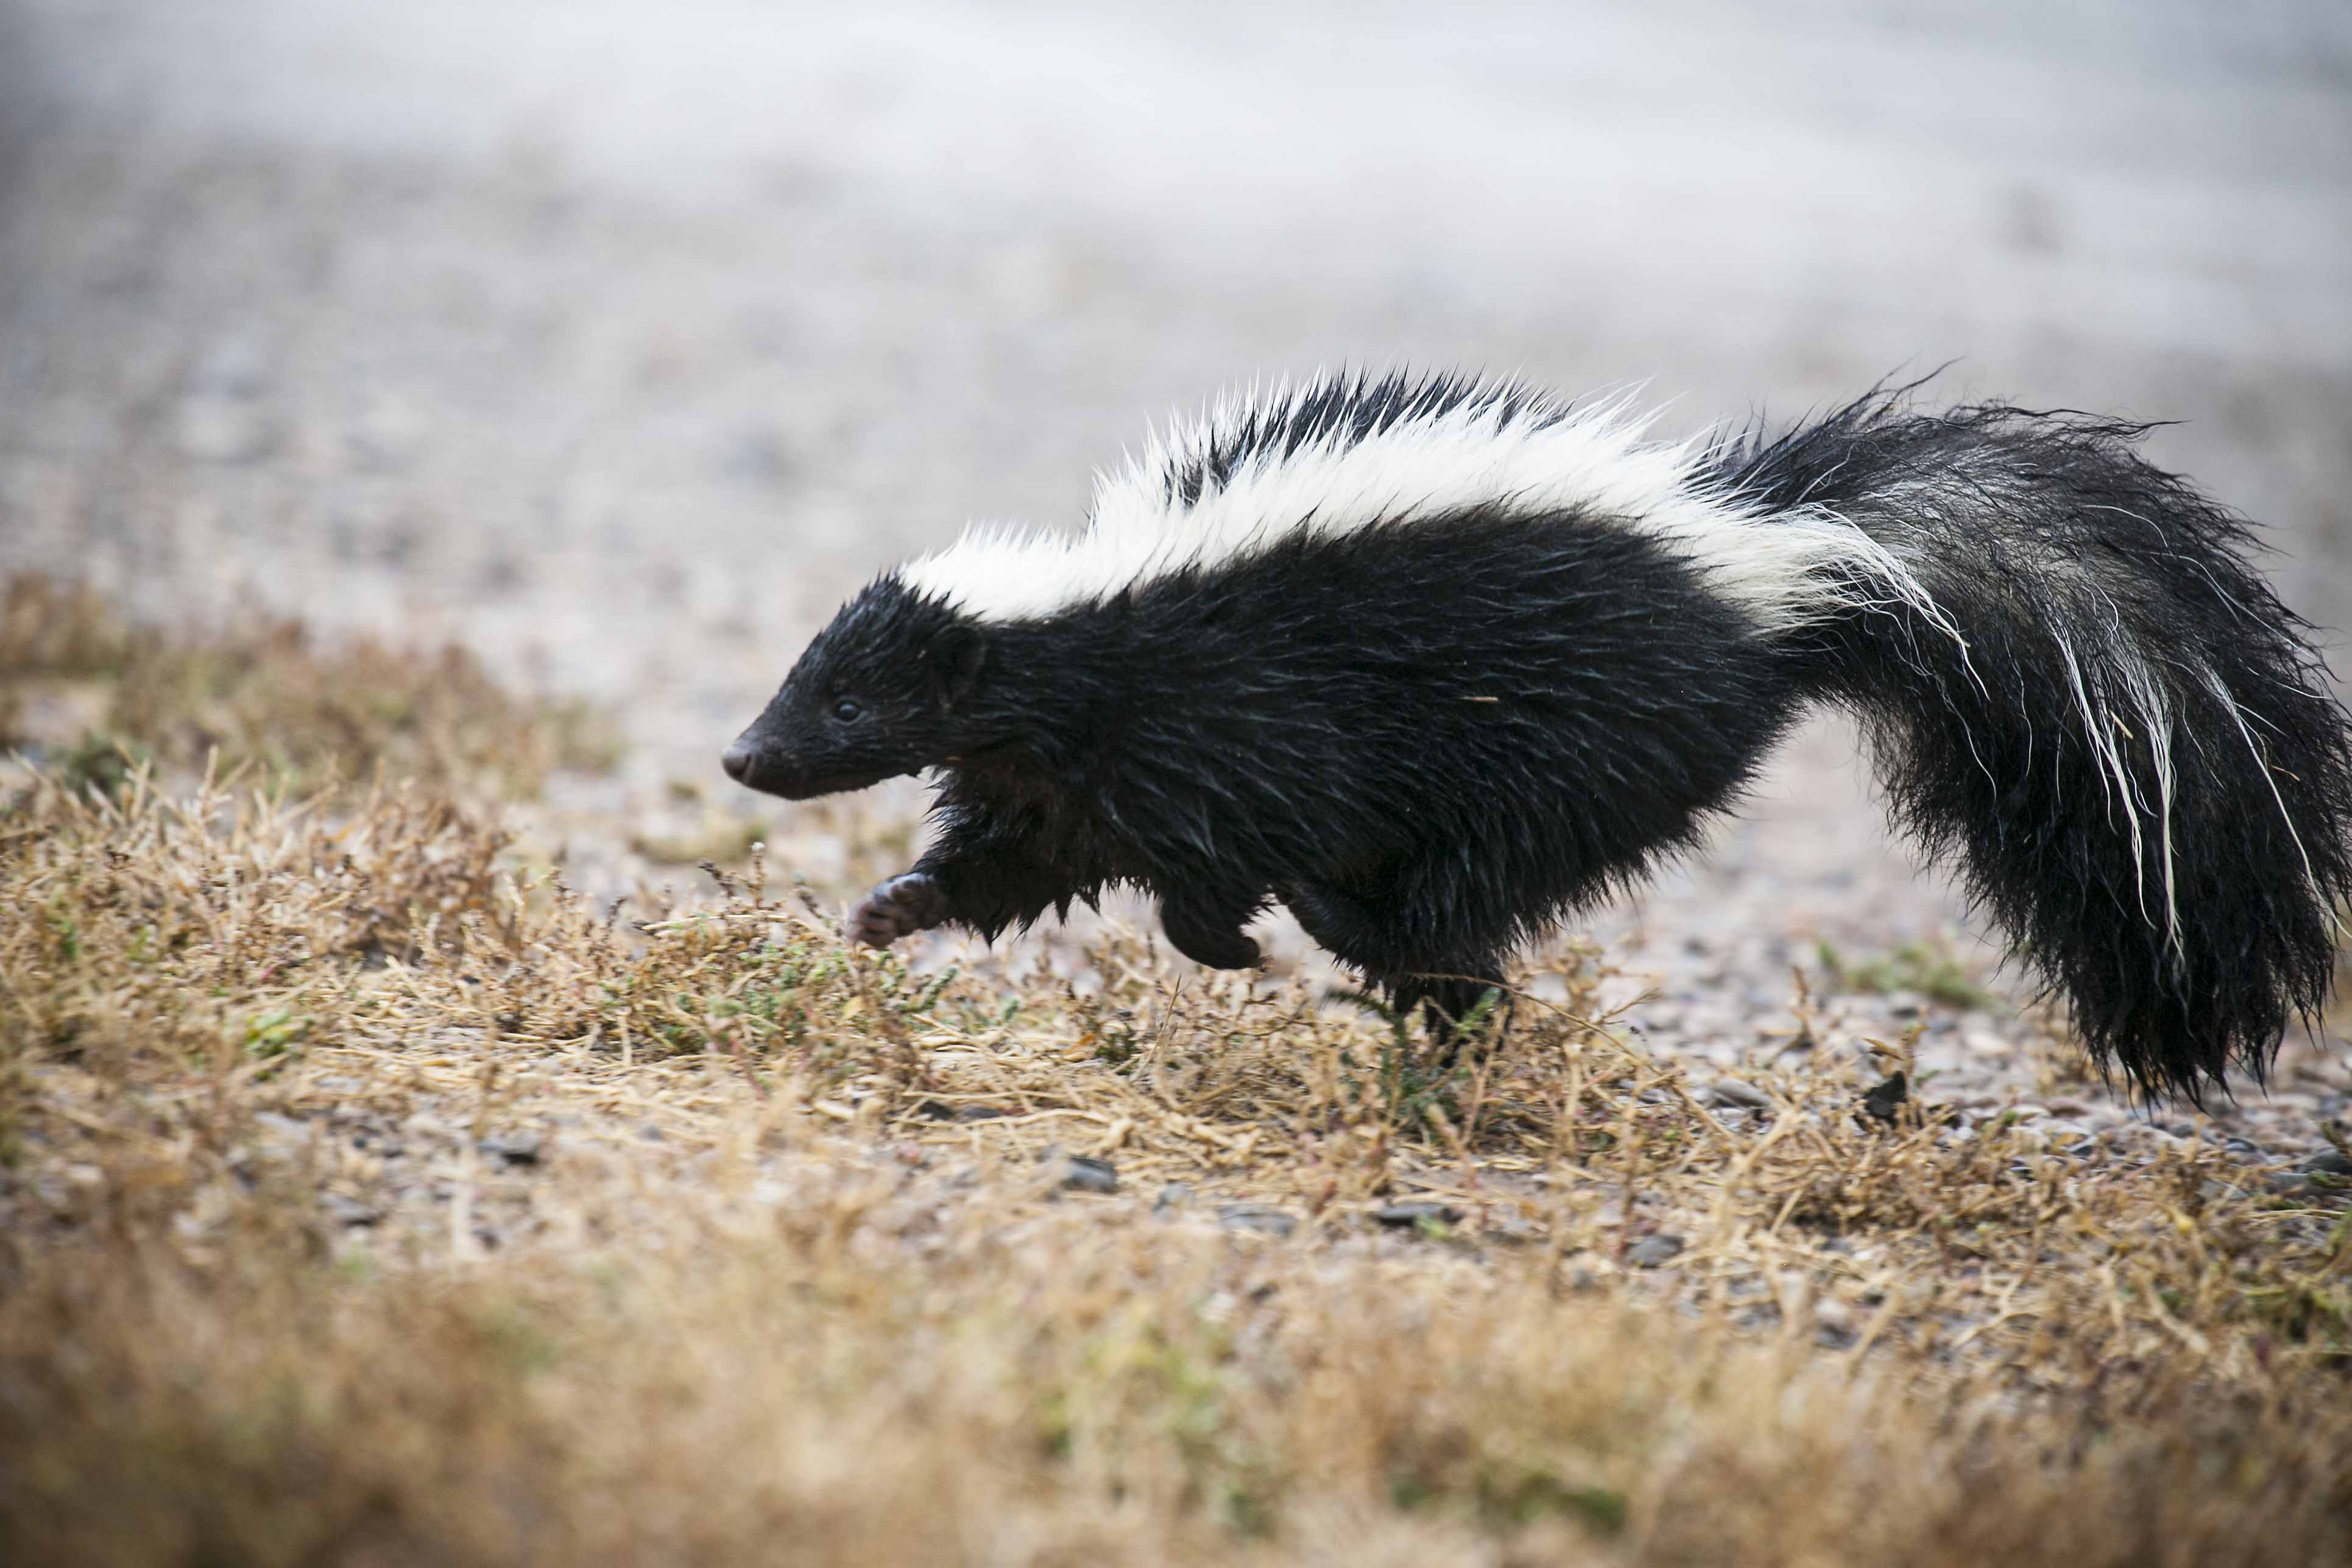 Can A Skunk Spray Be Mistaken For Natural Gas